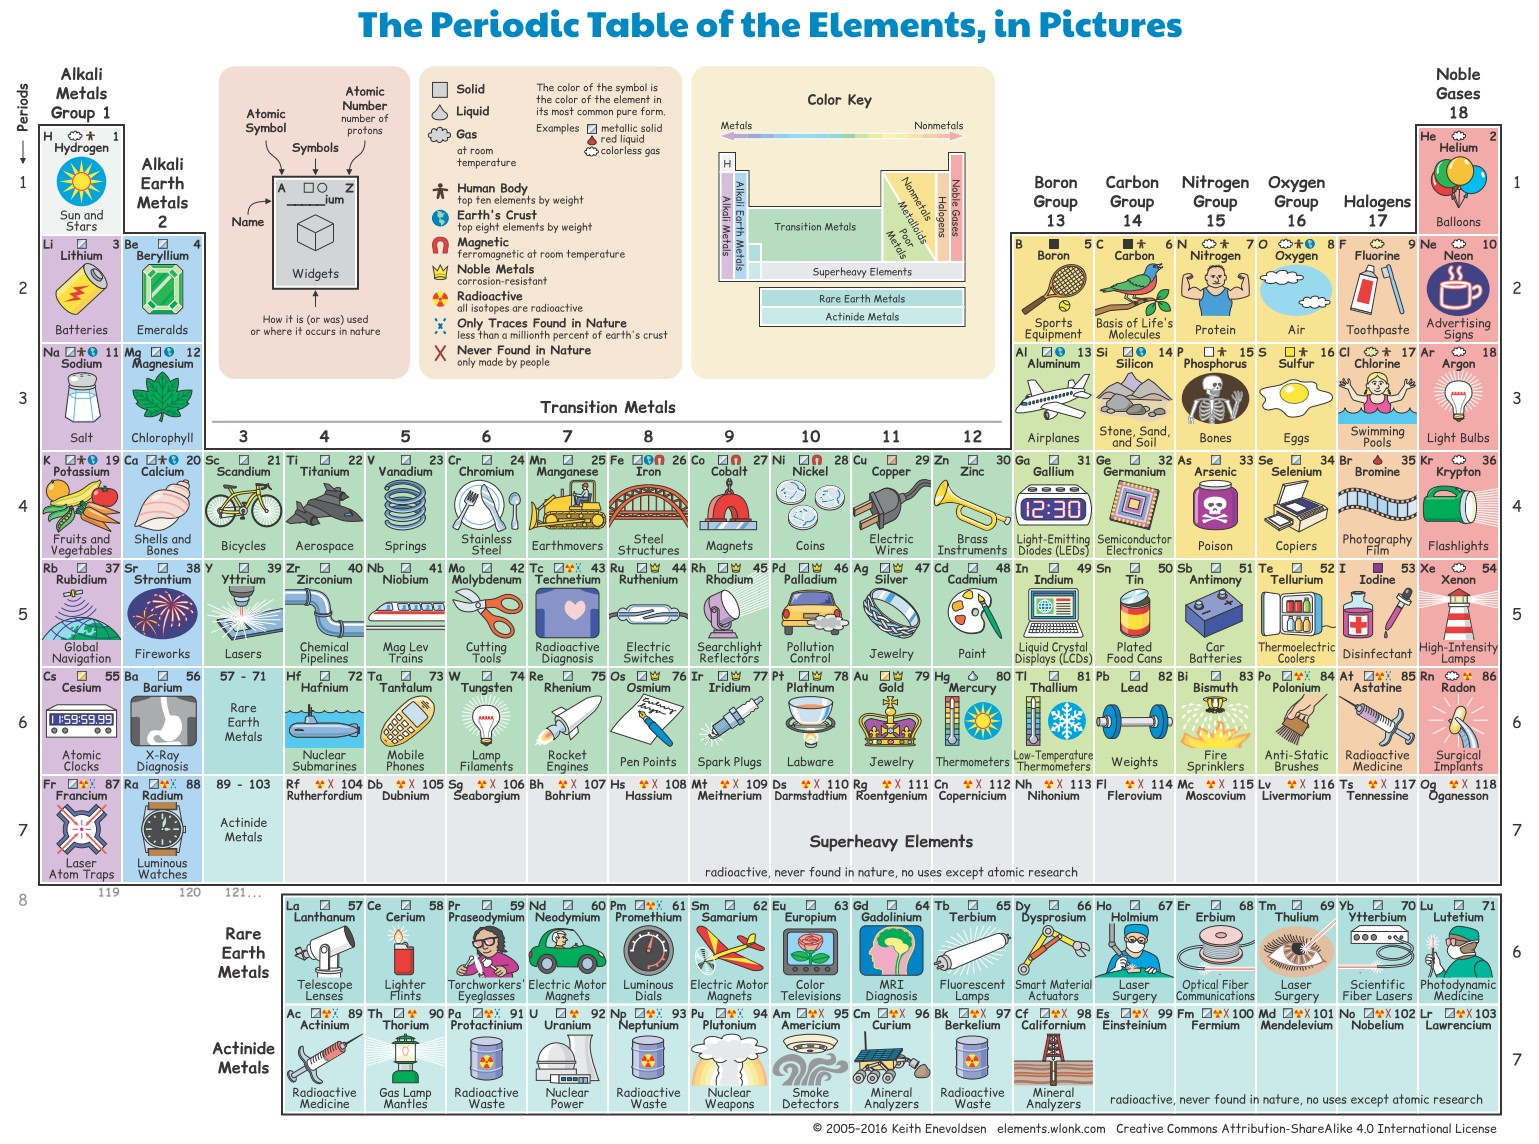 Periodic table solids liquids gases gallery periodic table images periodic table liquid solid gas images periodic table images periodic table liquid solid gas gallery periodic gamestrikefo Choice Image